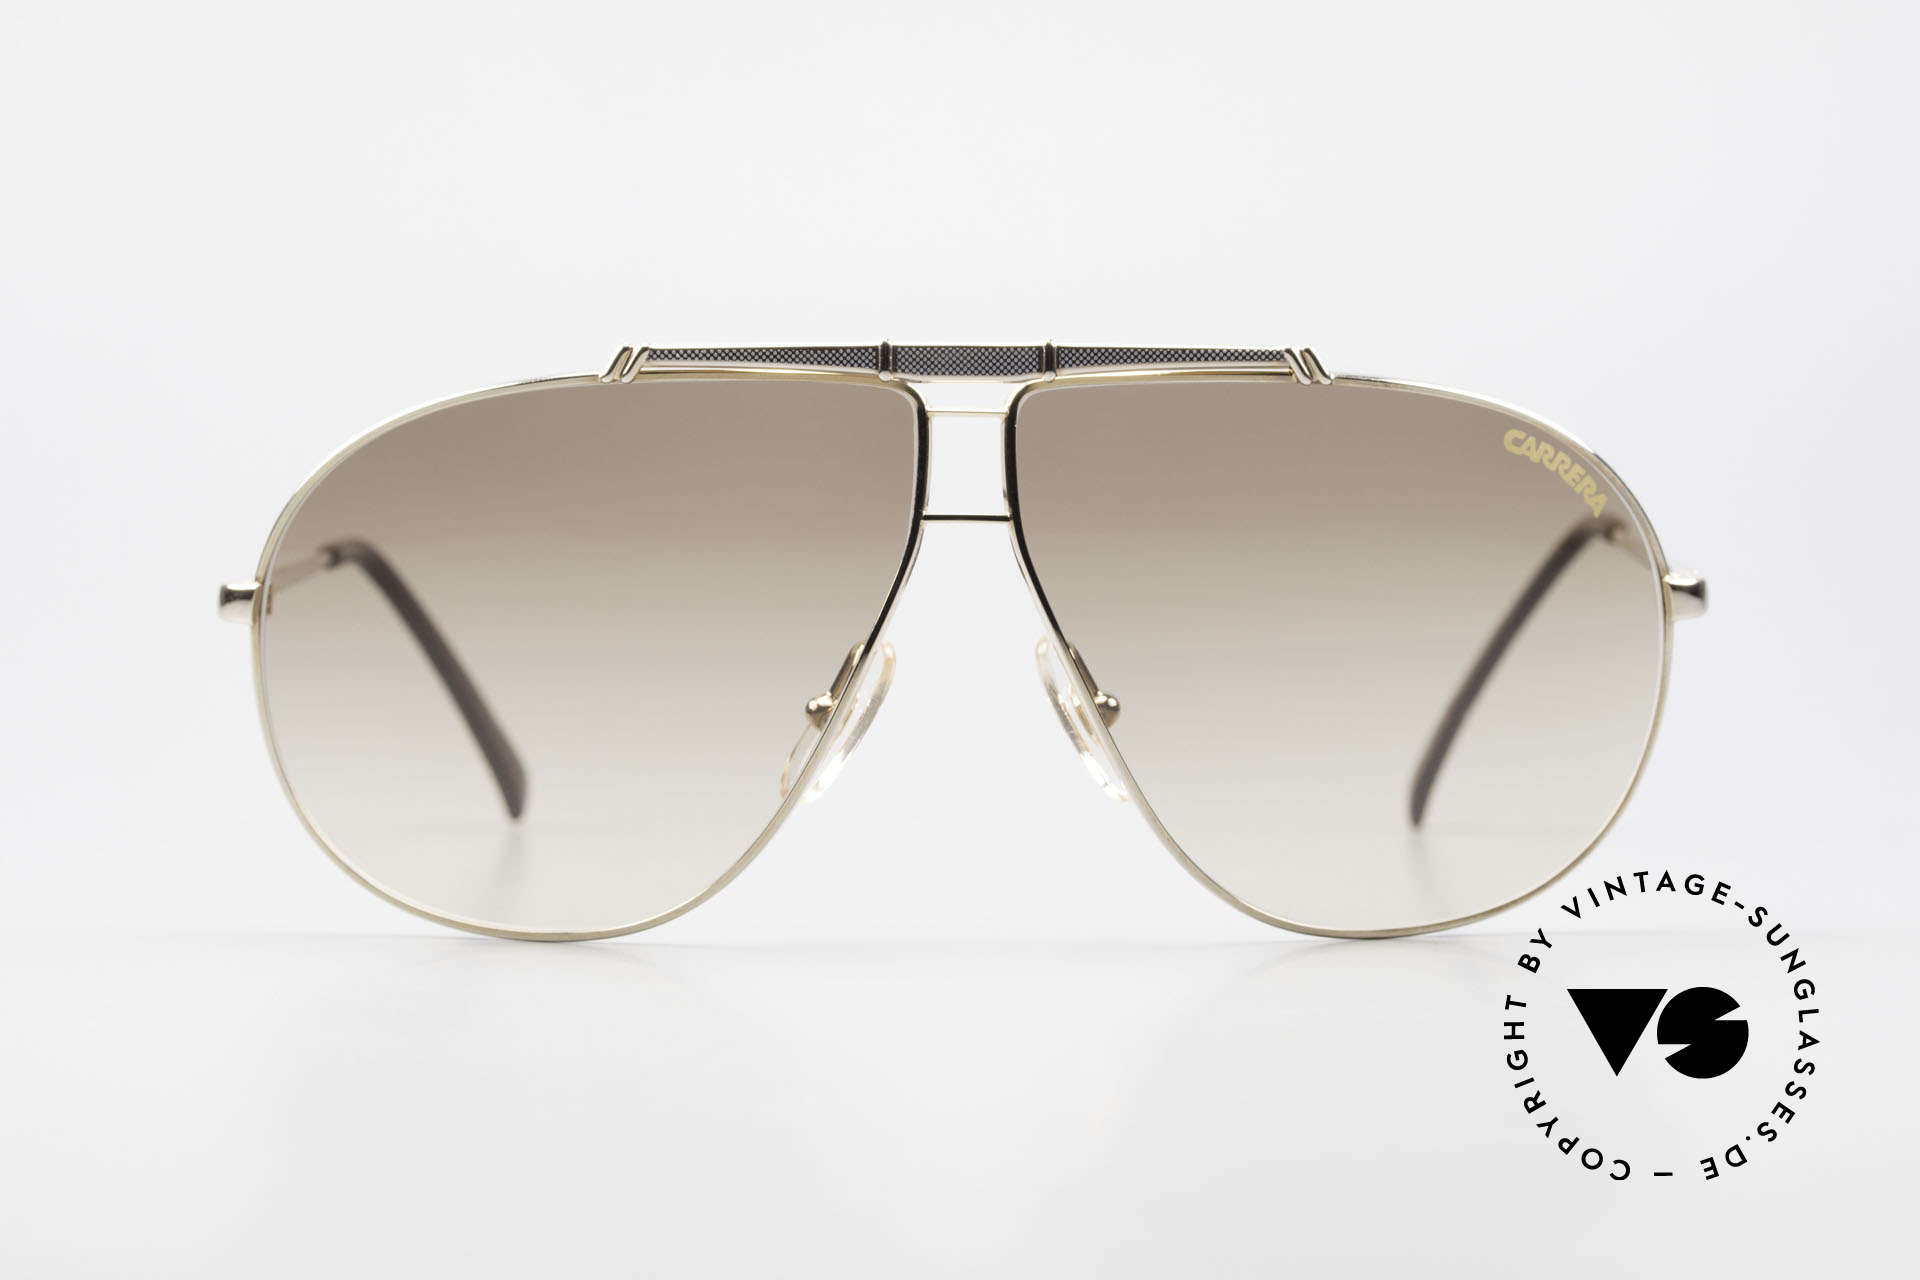 Carrera 5401 Small 80's Shades 3 Sets of Lenses, mod. 5401 Strato Small, size 62/07, Sport Performance, Made for Men and Women